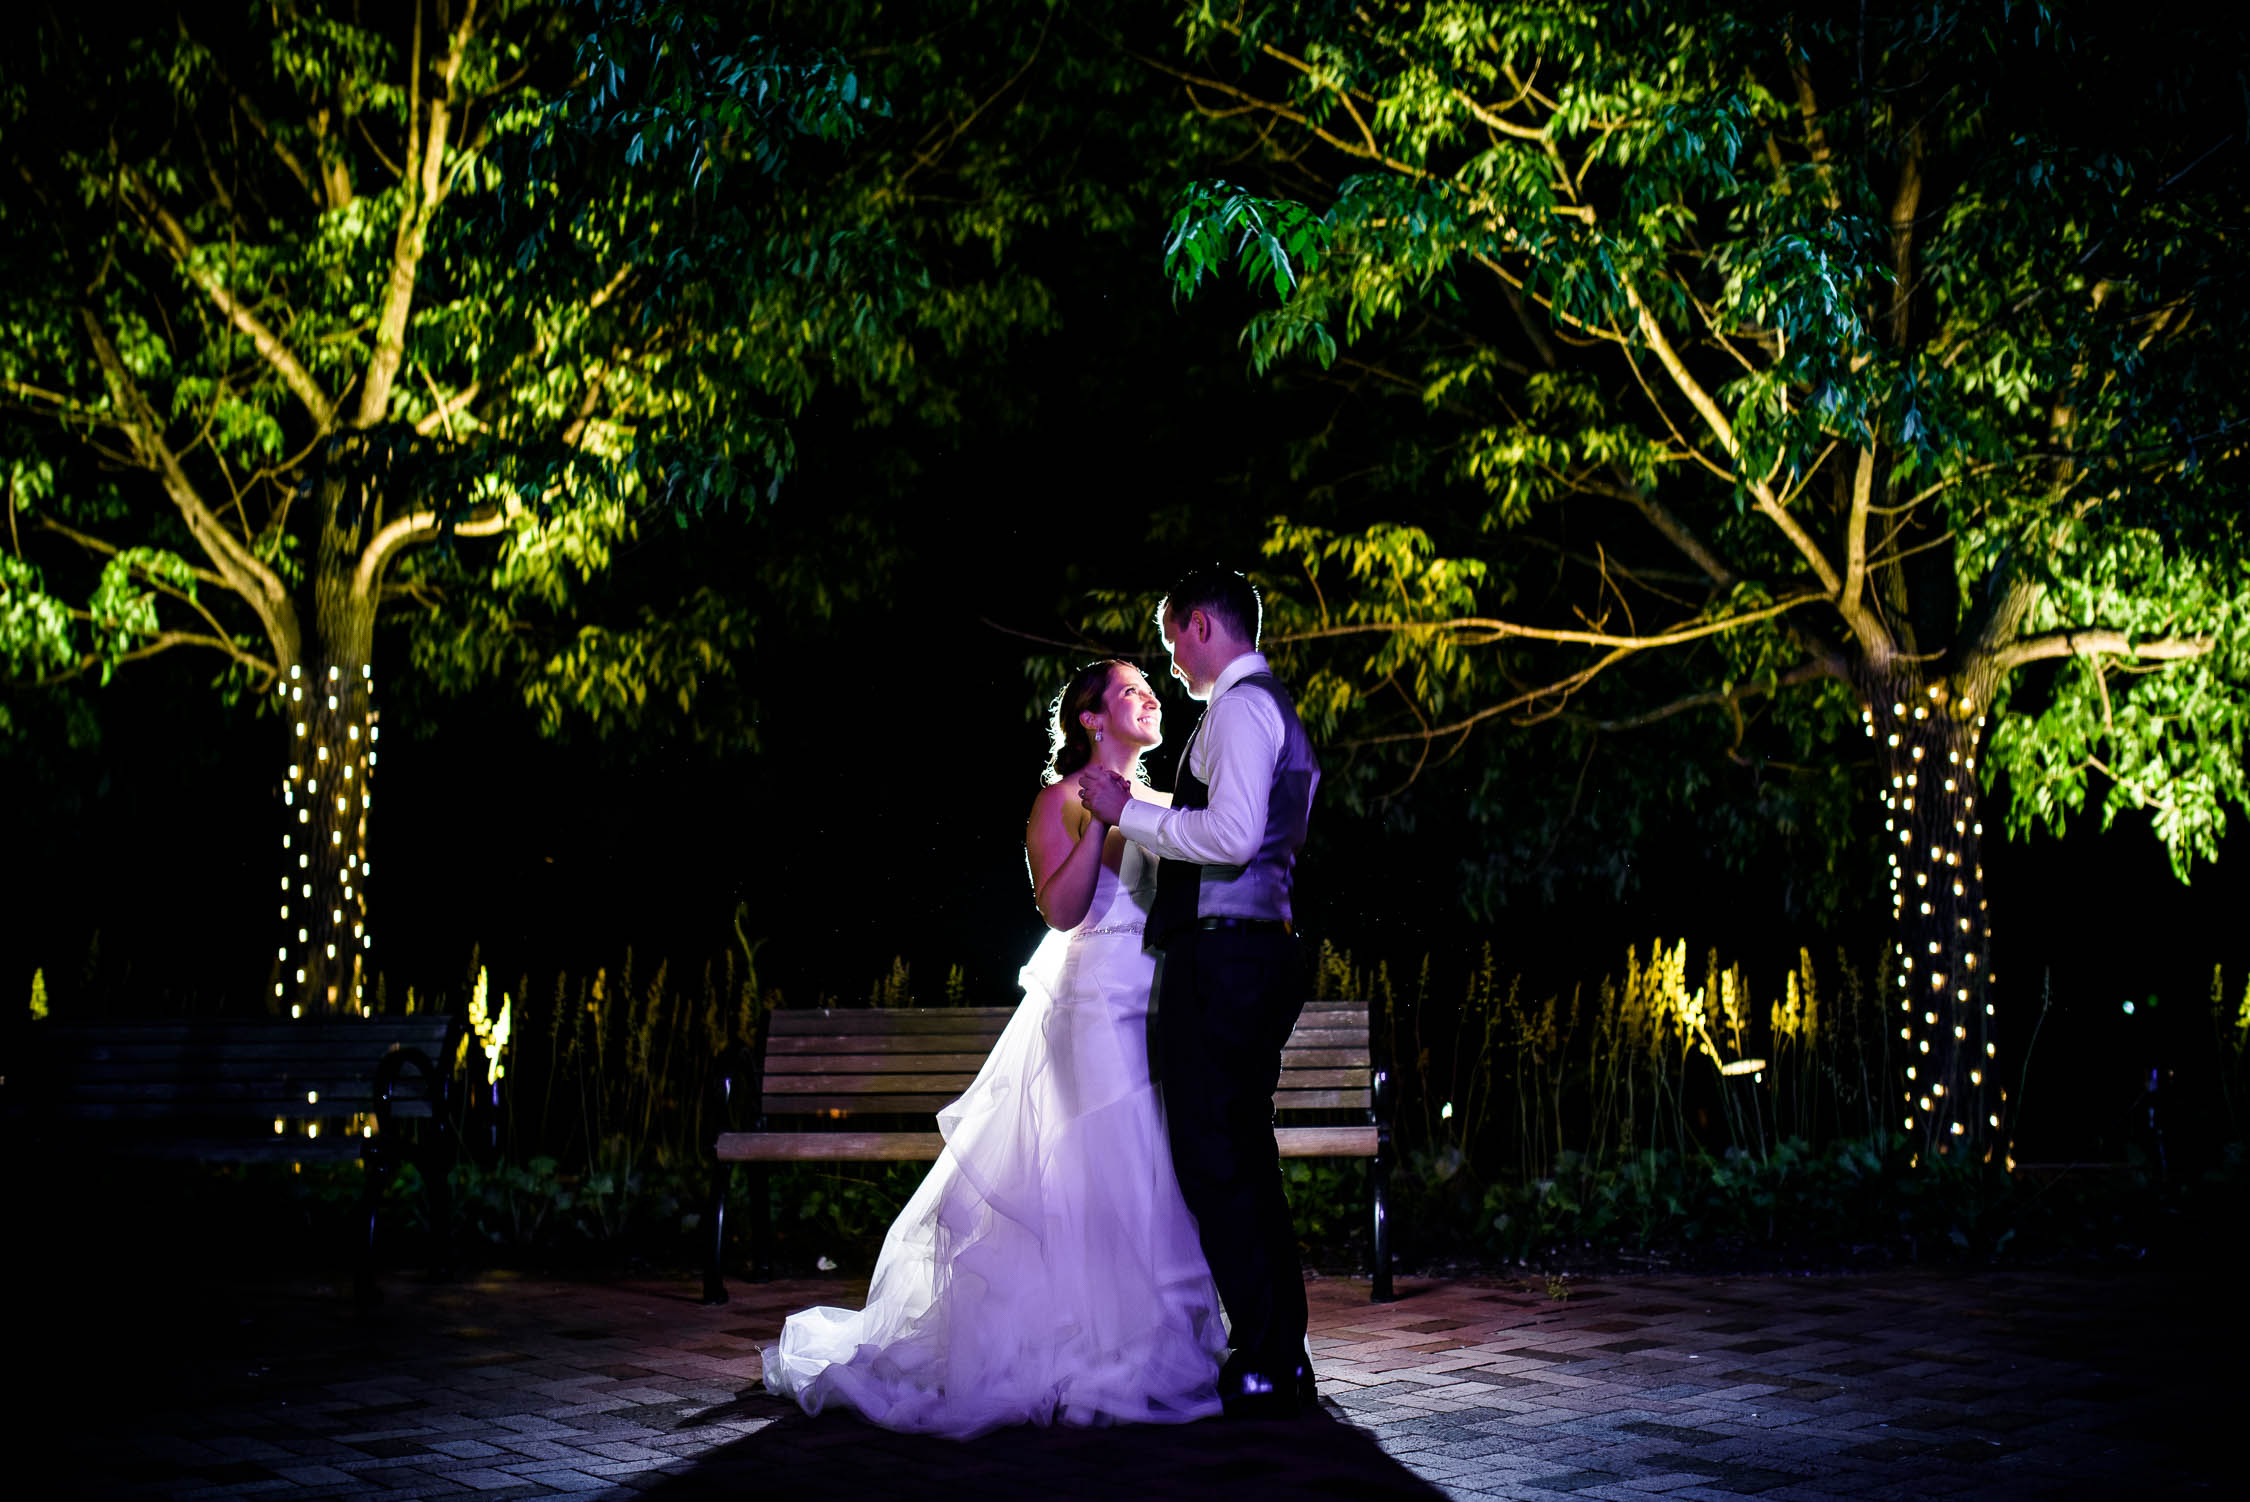 Creative night wedding portrait of the bride and groom at Independence Grove in Libertyville.